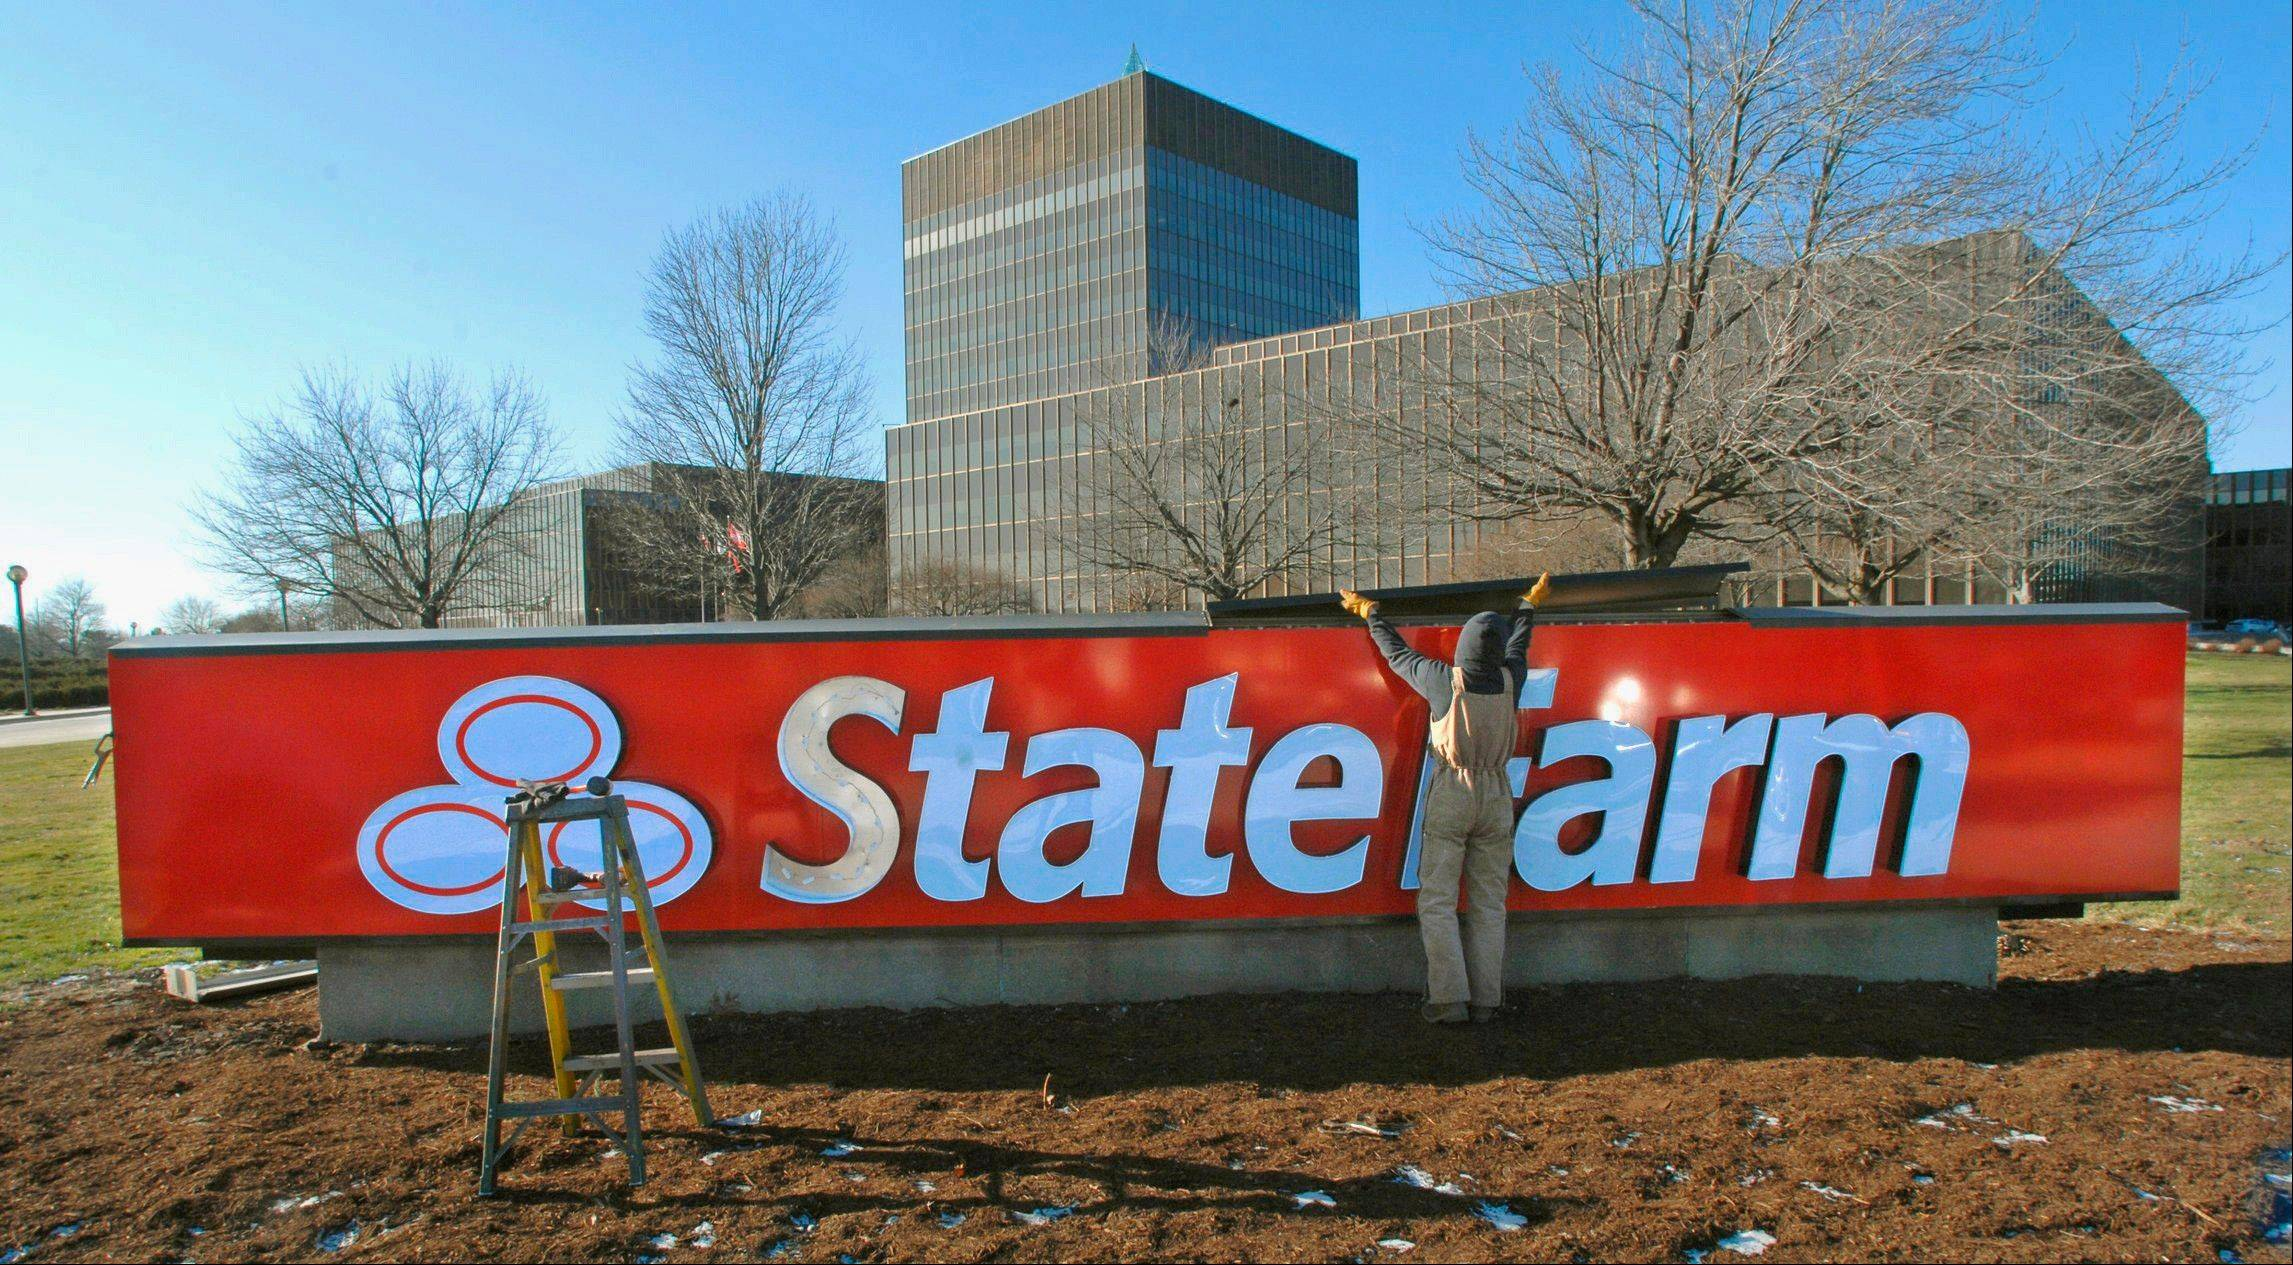 State Farm�s plans to add significant office space in Dallas, Atlanta and Phoenix have made some state leaders curious about the company�s intentions but a spokeswoman for the insurance firm said it has no plans to leave its Bloomington headquarters, pictured here.